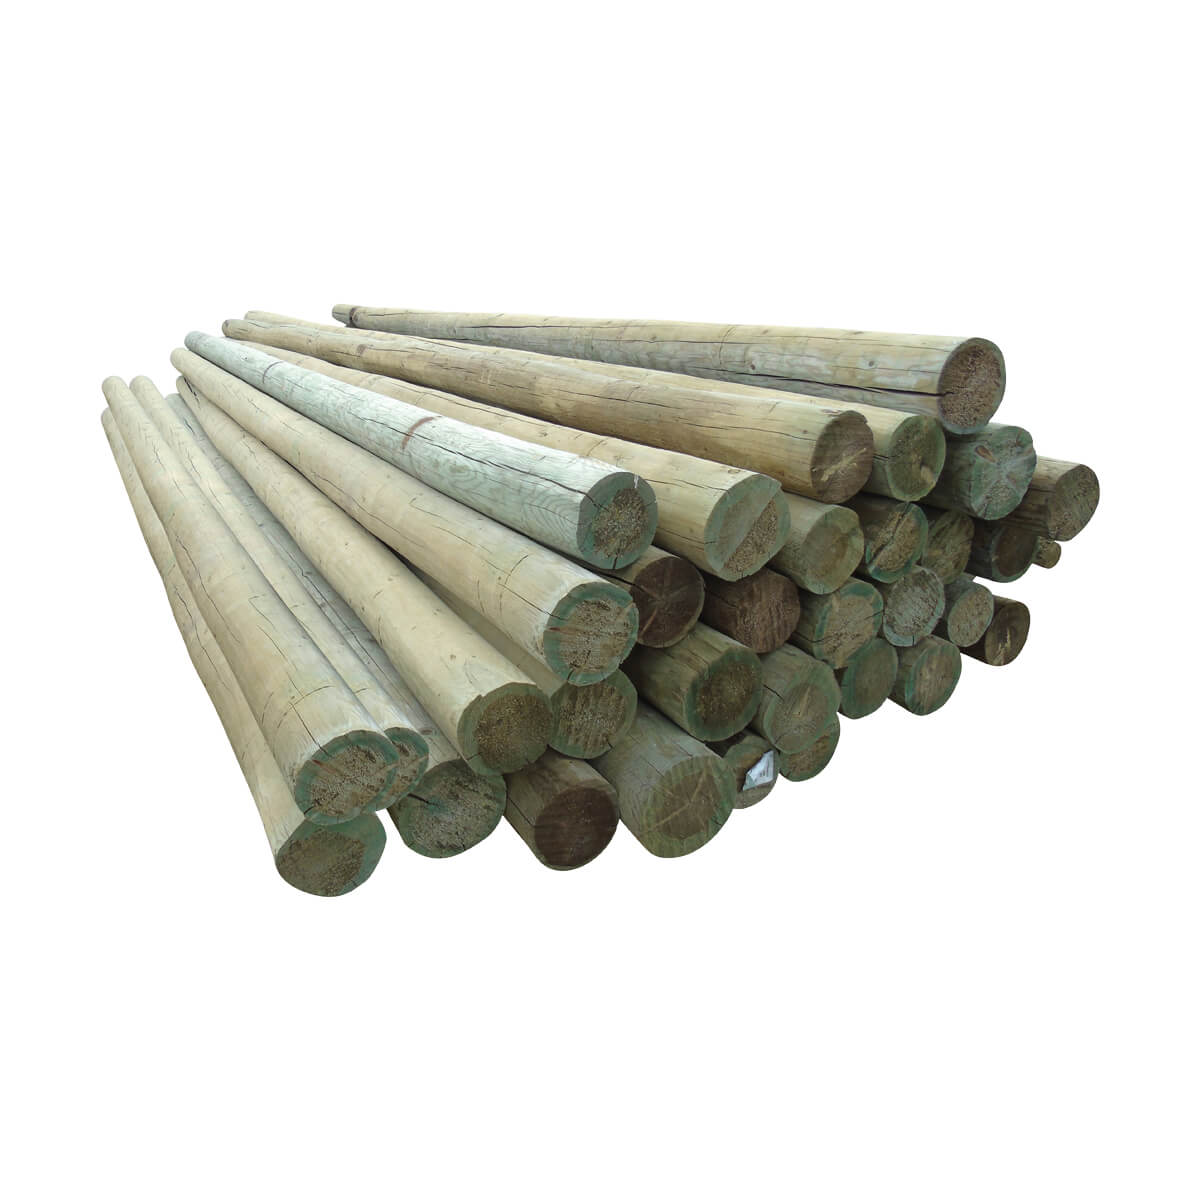 Peeled Fence Poles - Blunt - 7-in x 10-ft